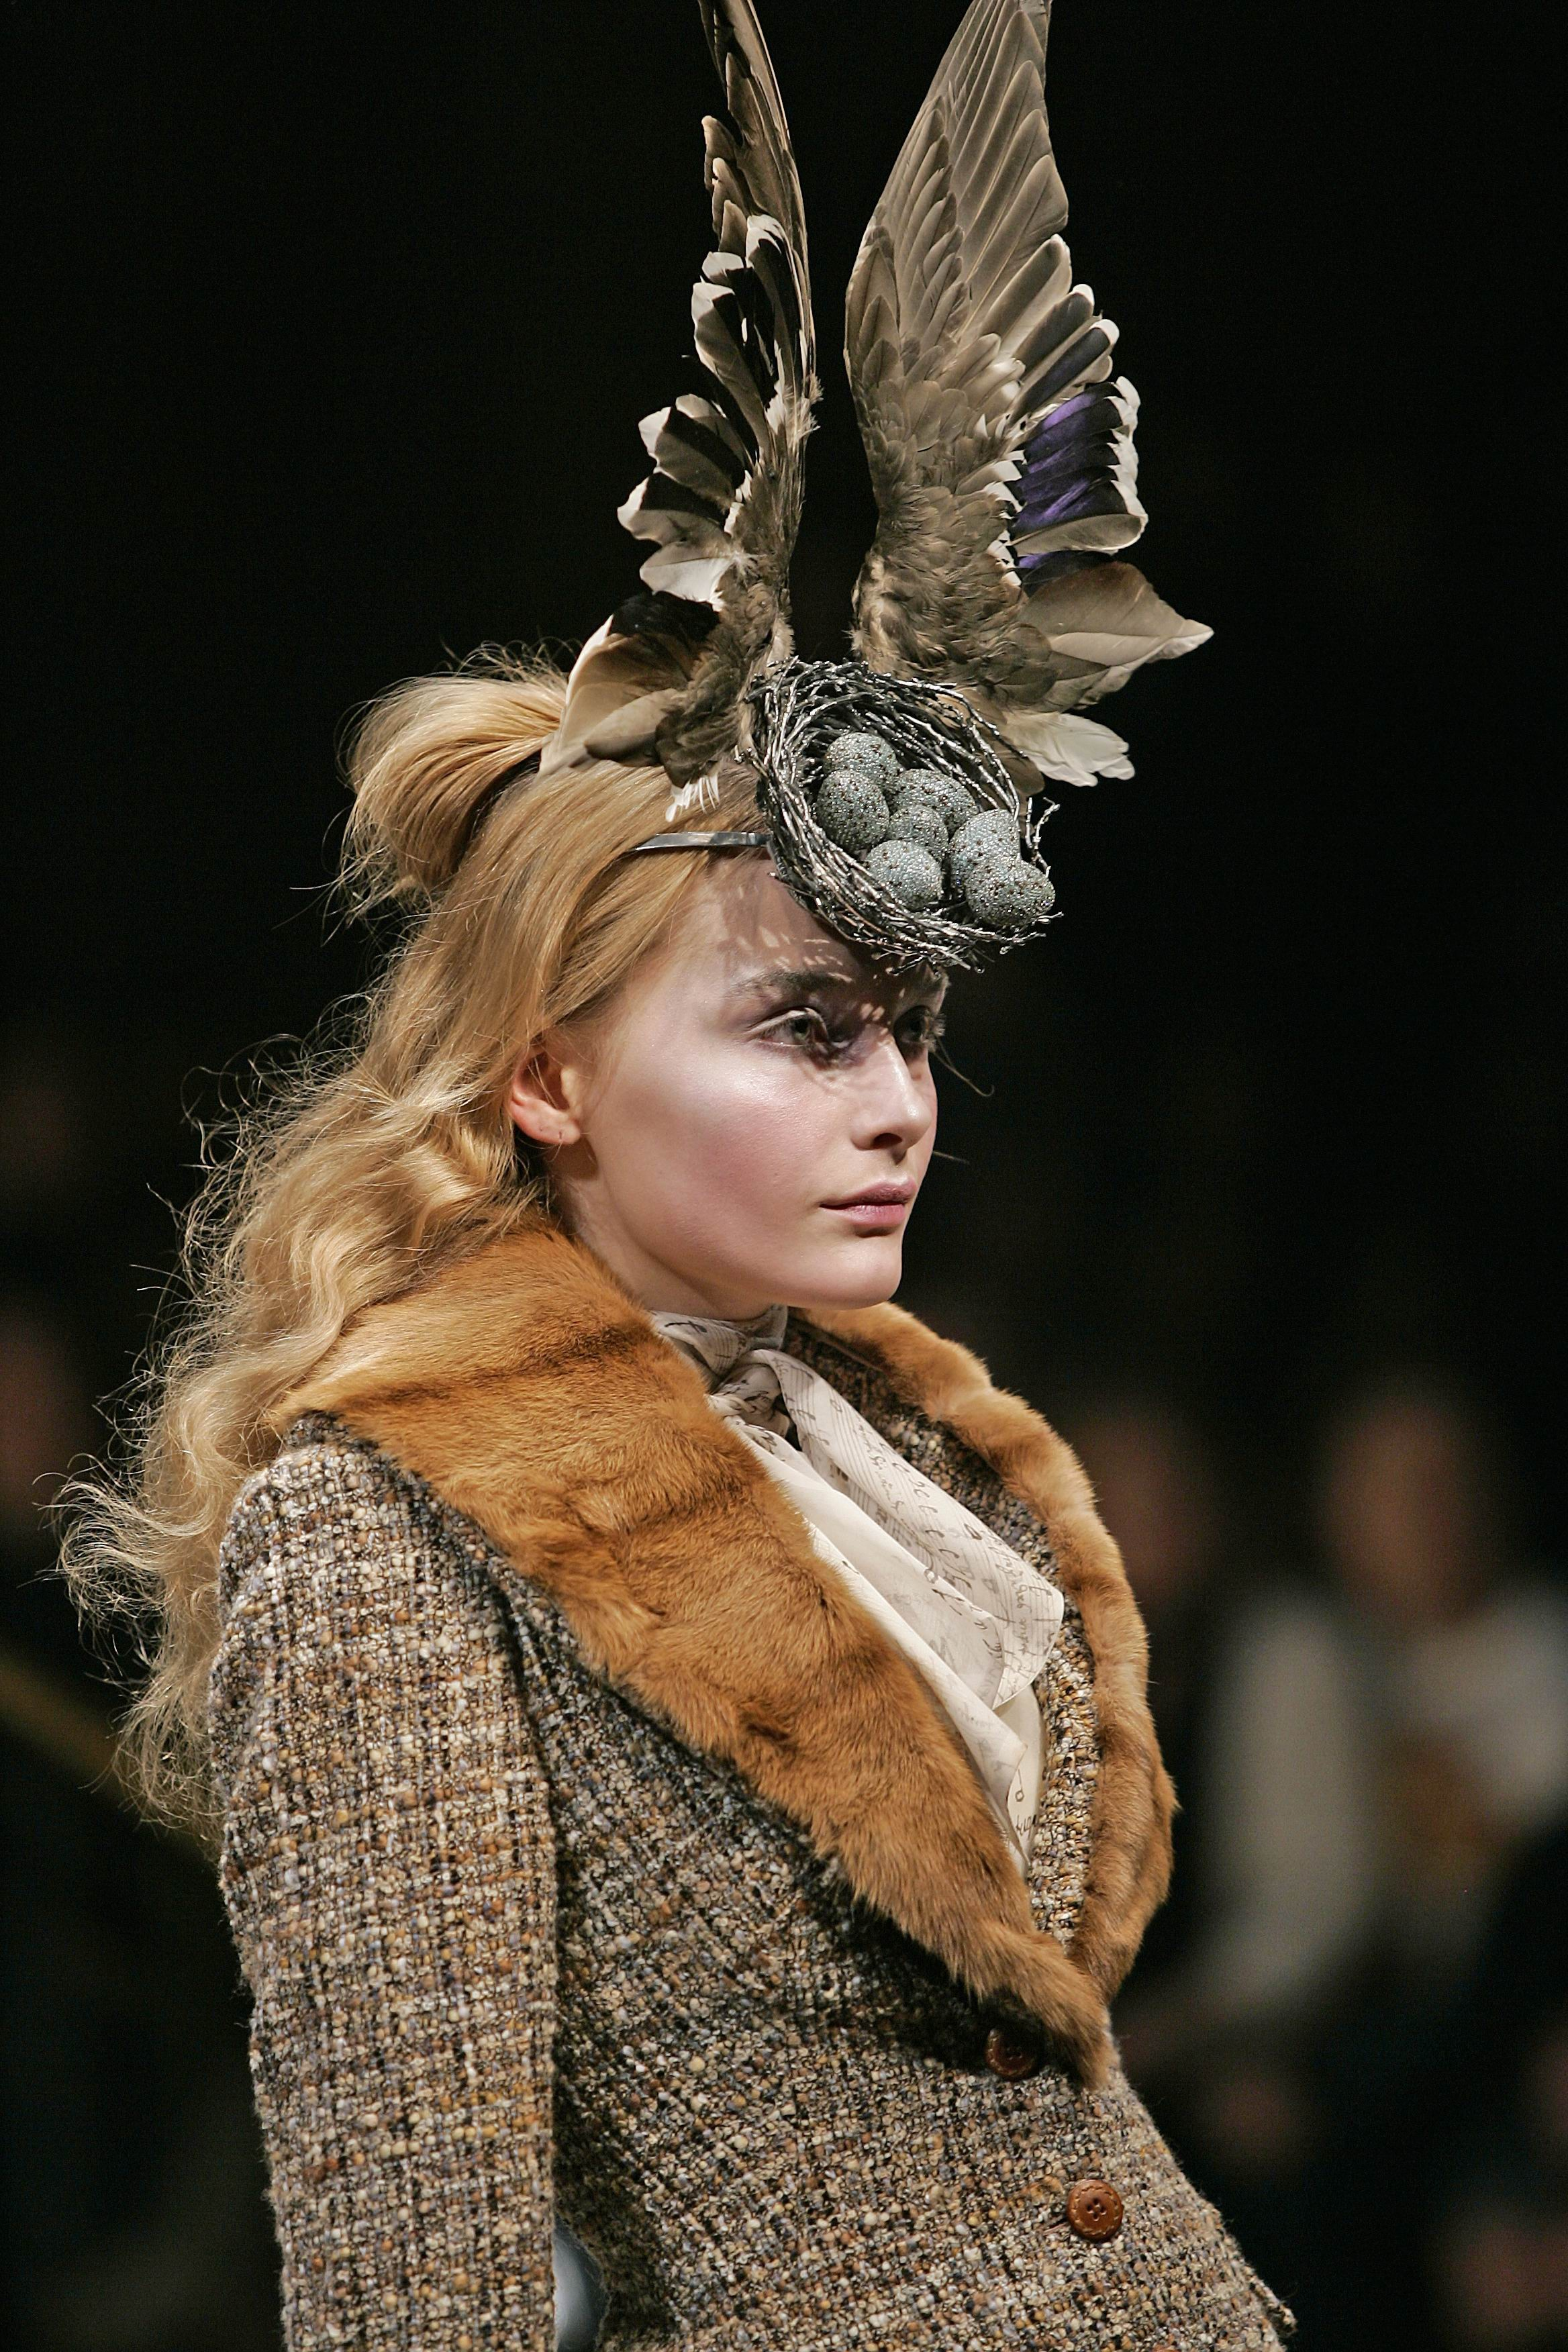 6. Bird's Nest Headdress, made with Swarovski Gemstones by Philip Treacy and Shaun Leane for Alexander McQueen AW 2006